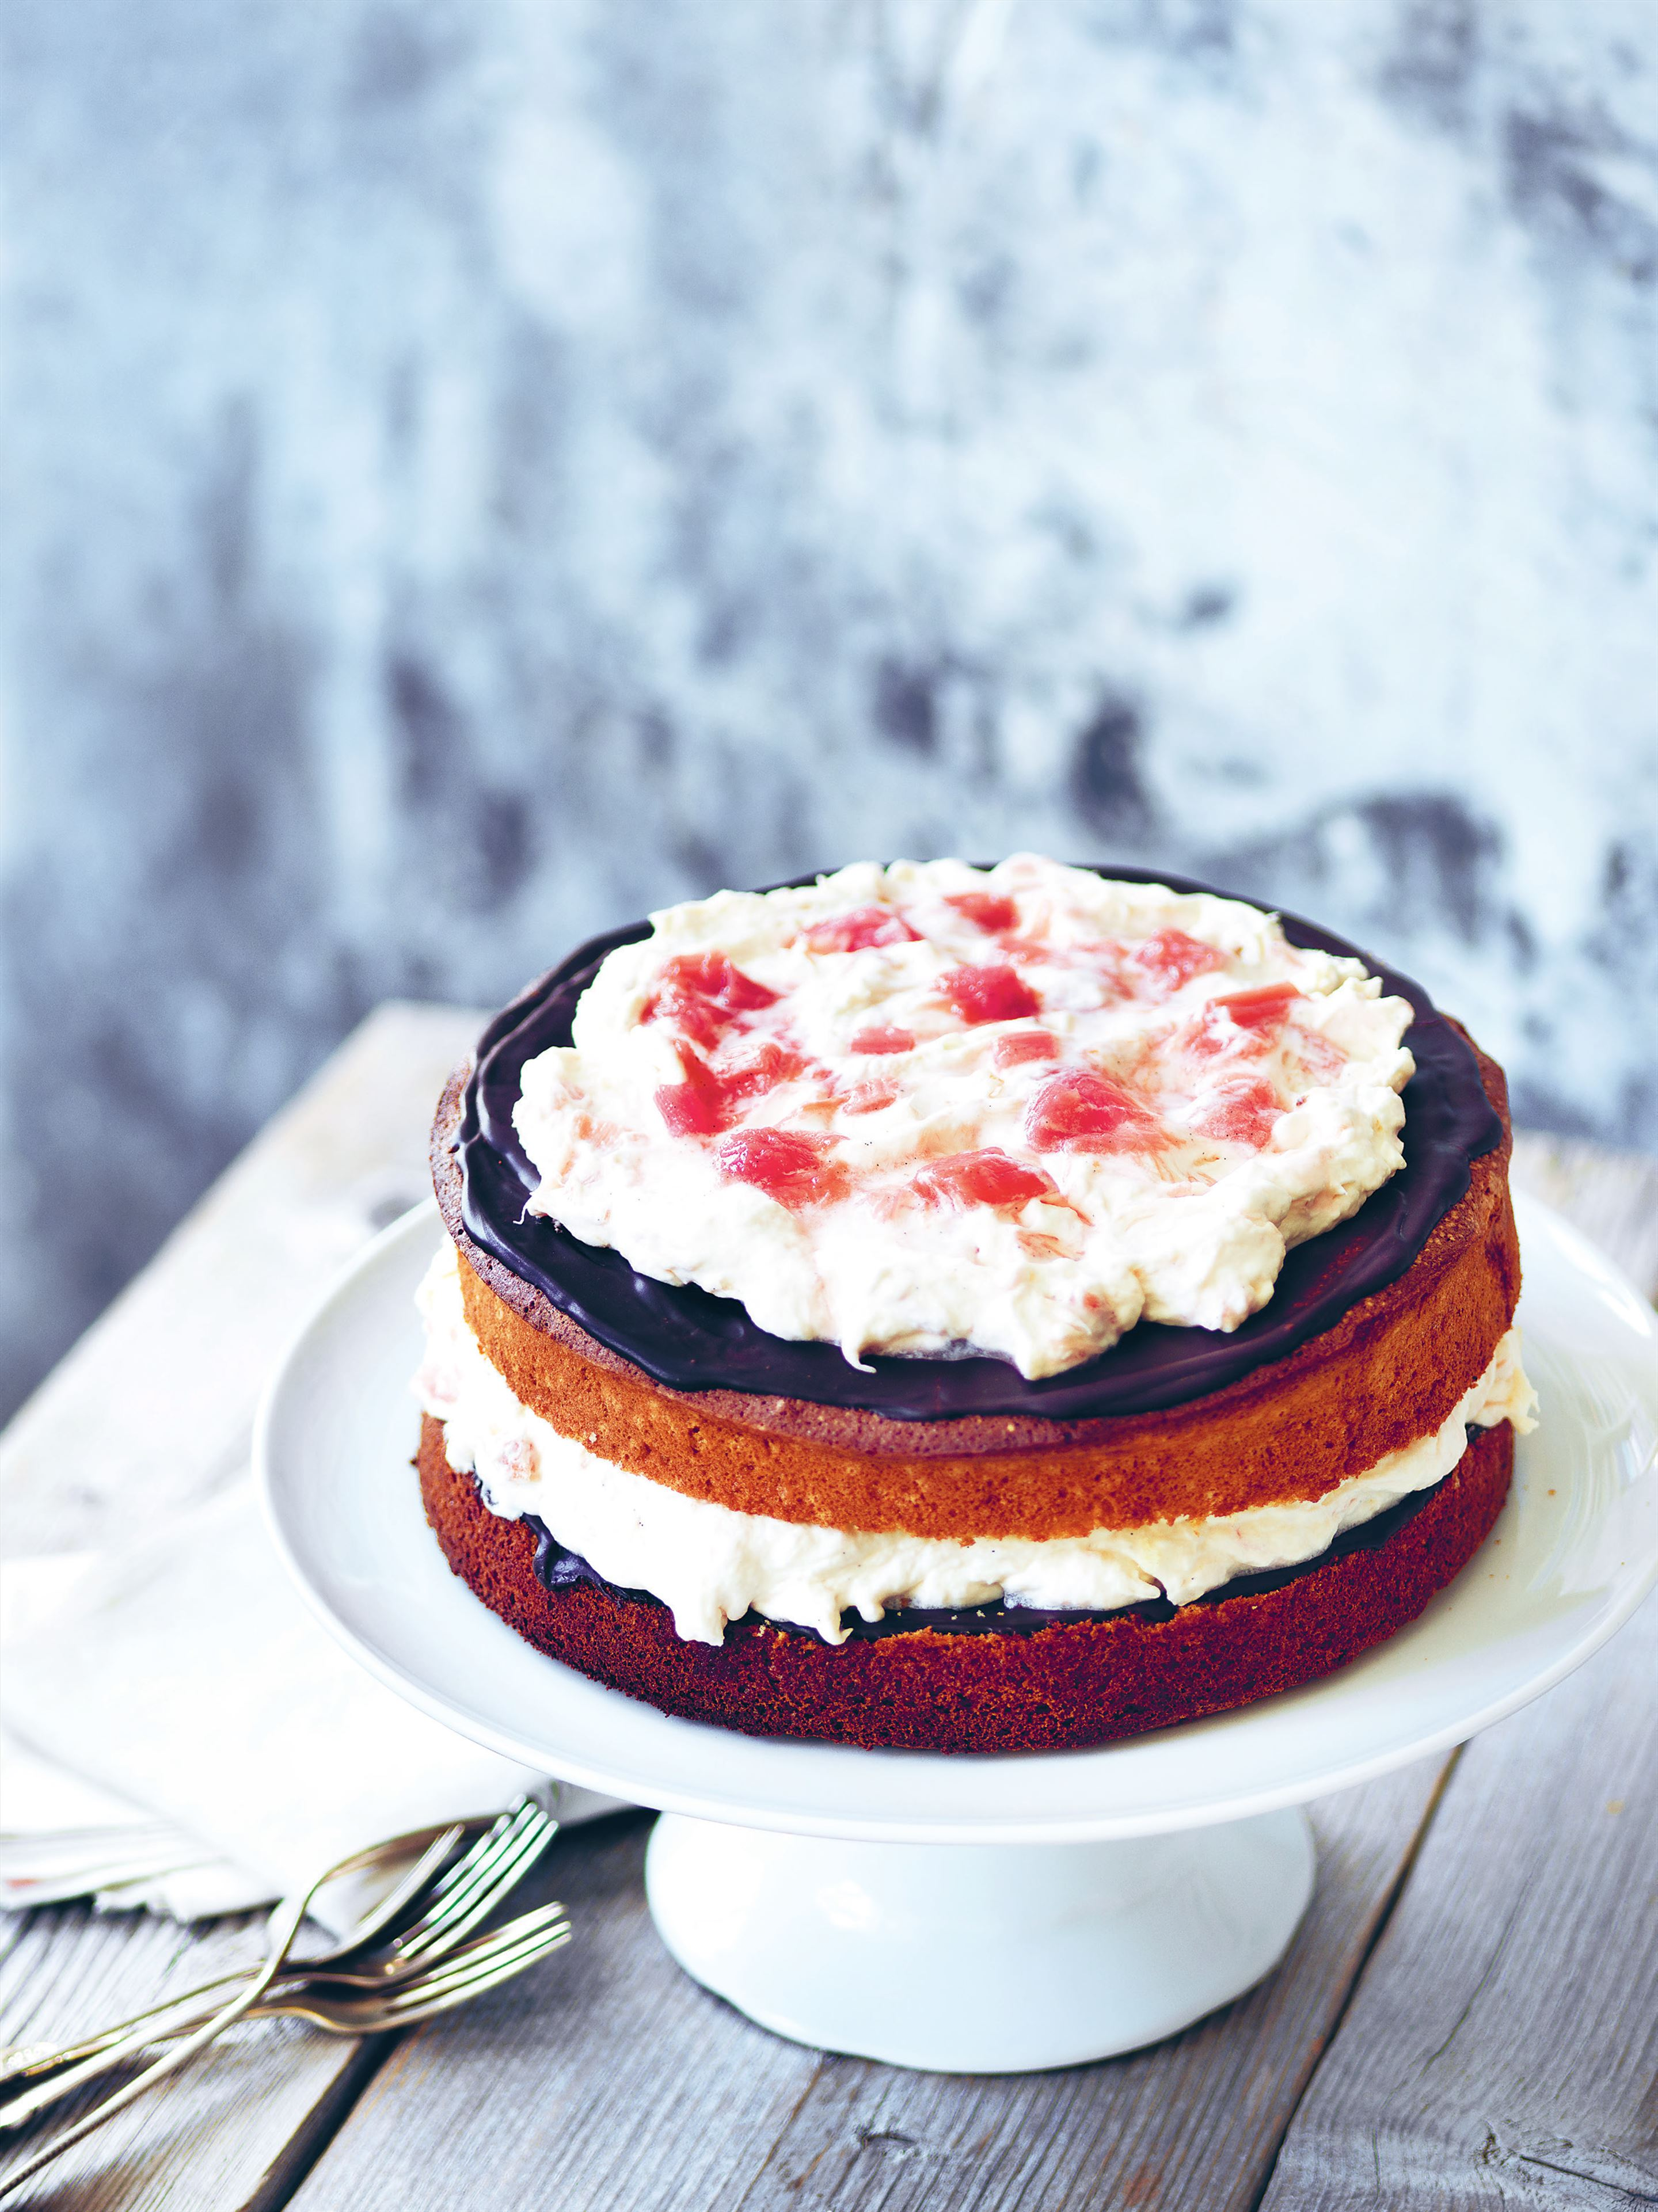 Rhubarb and chocolate layer cake